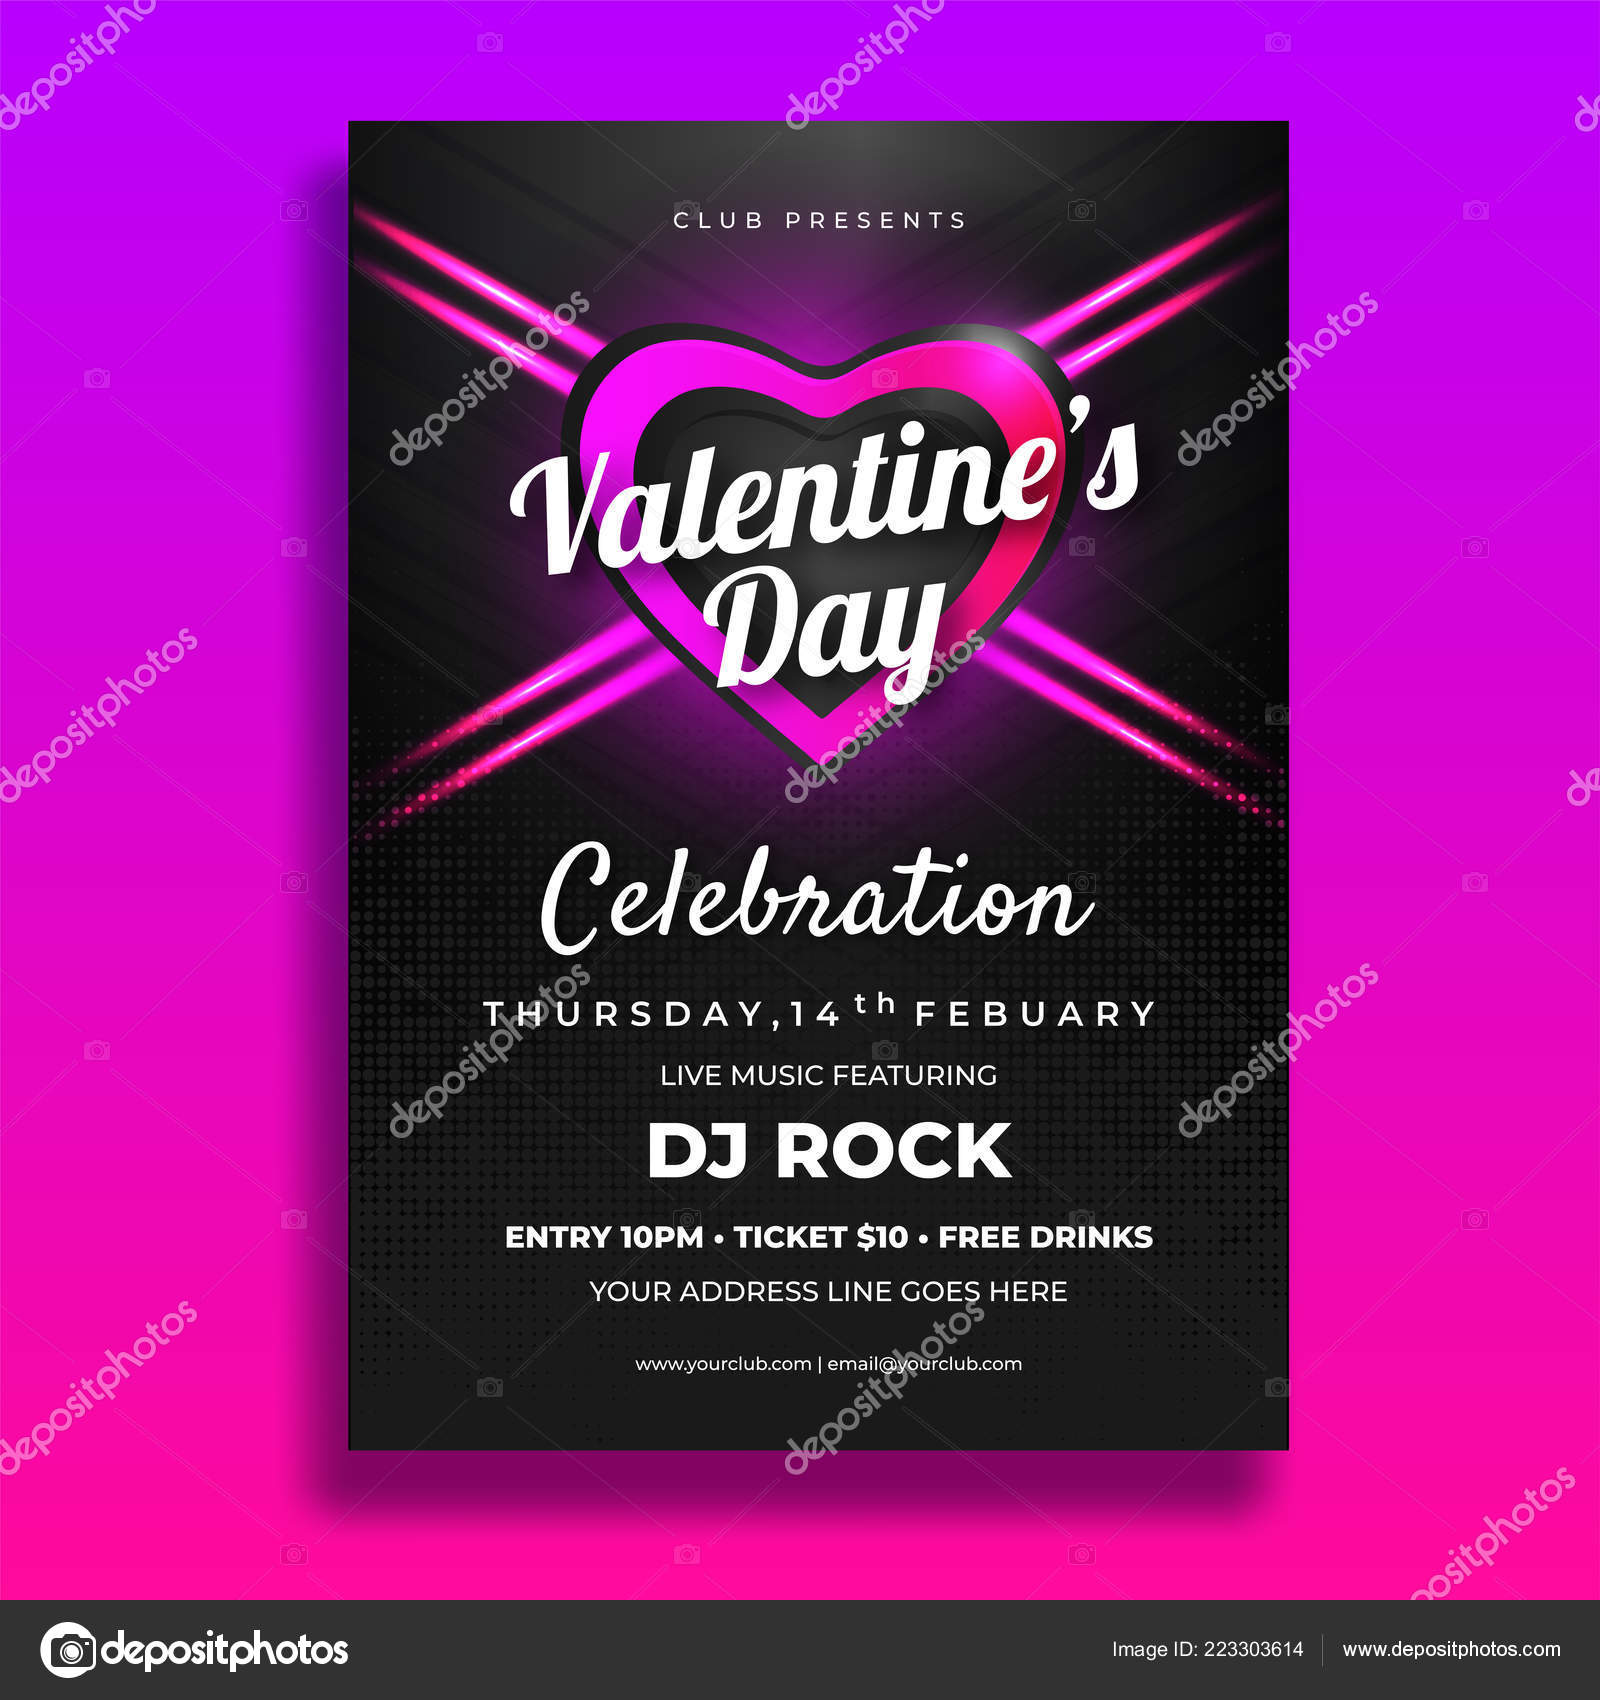 Valentines Day Party Invitation Card Template Design Date